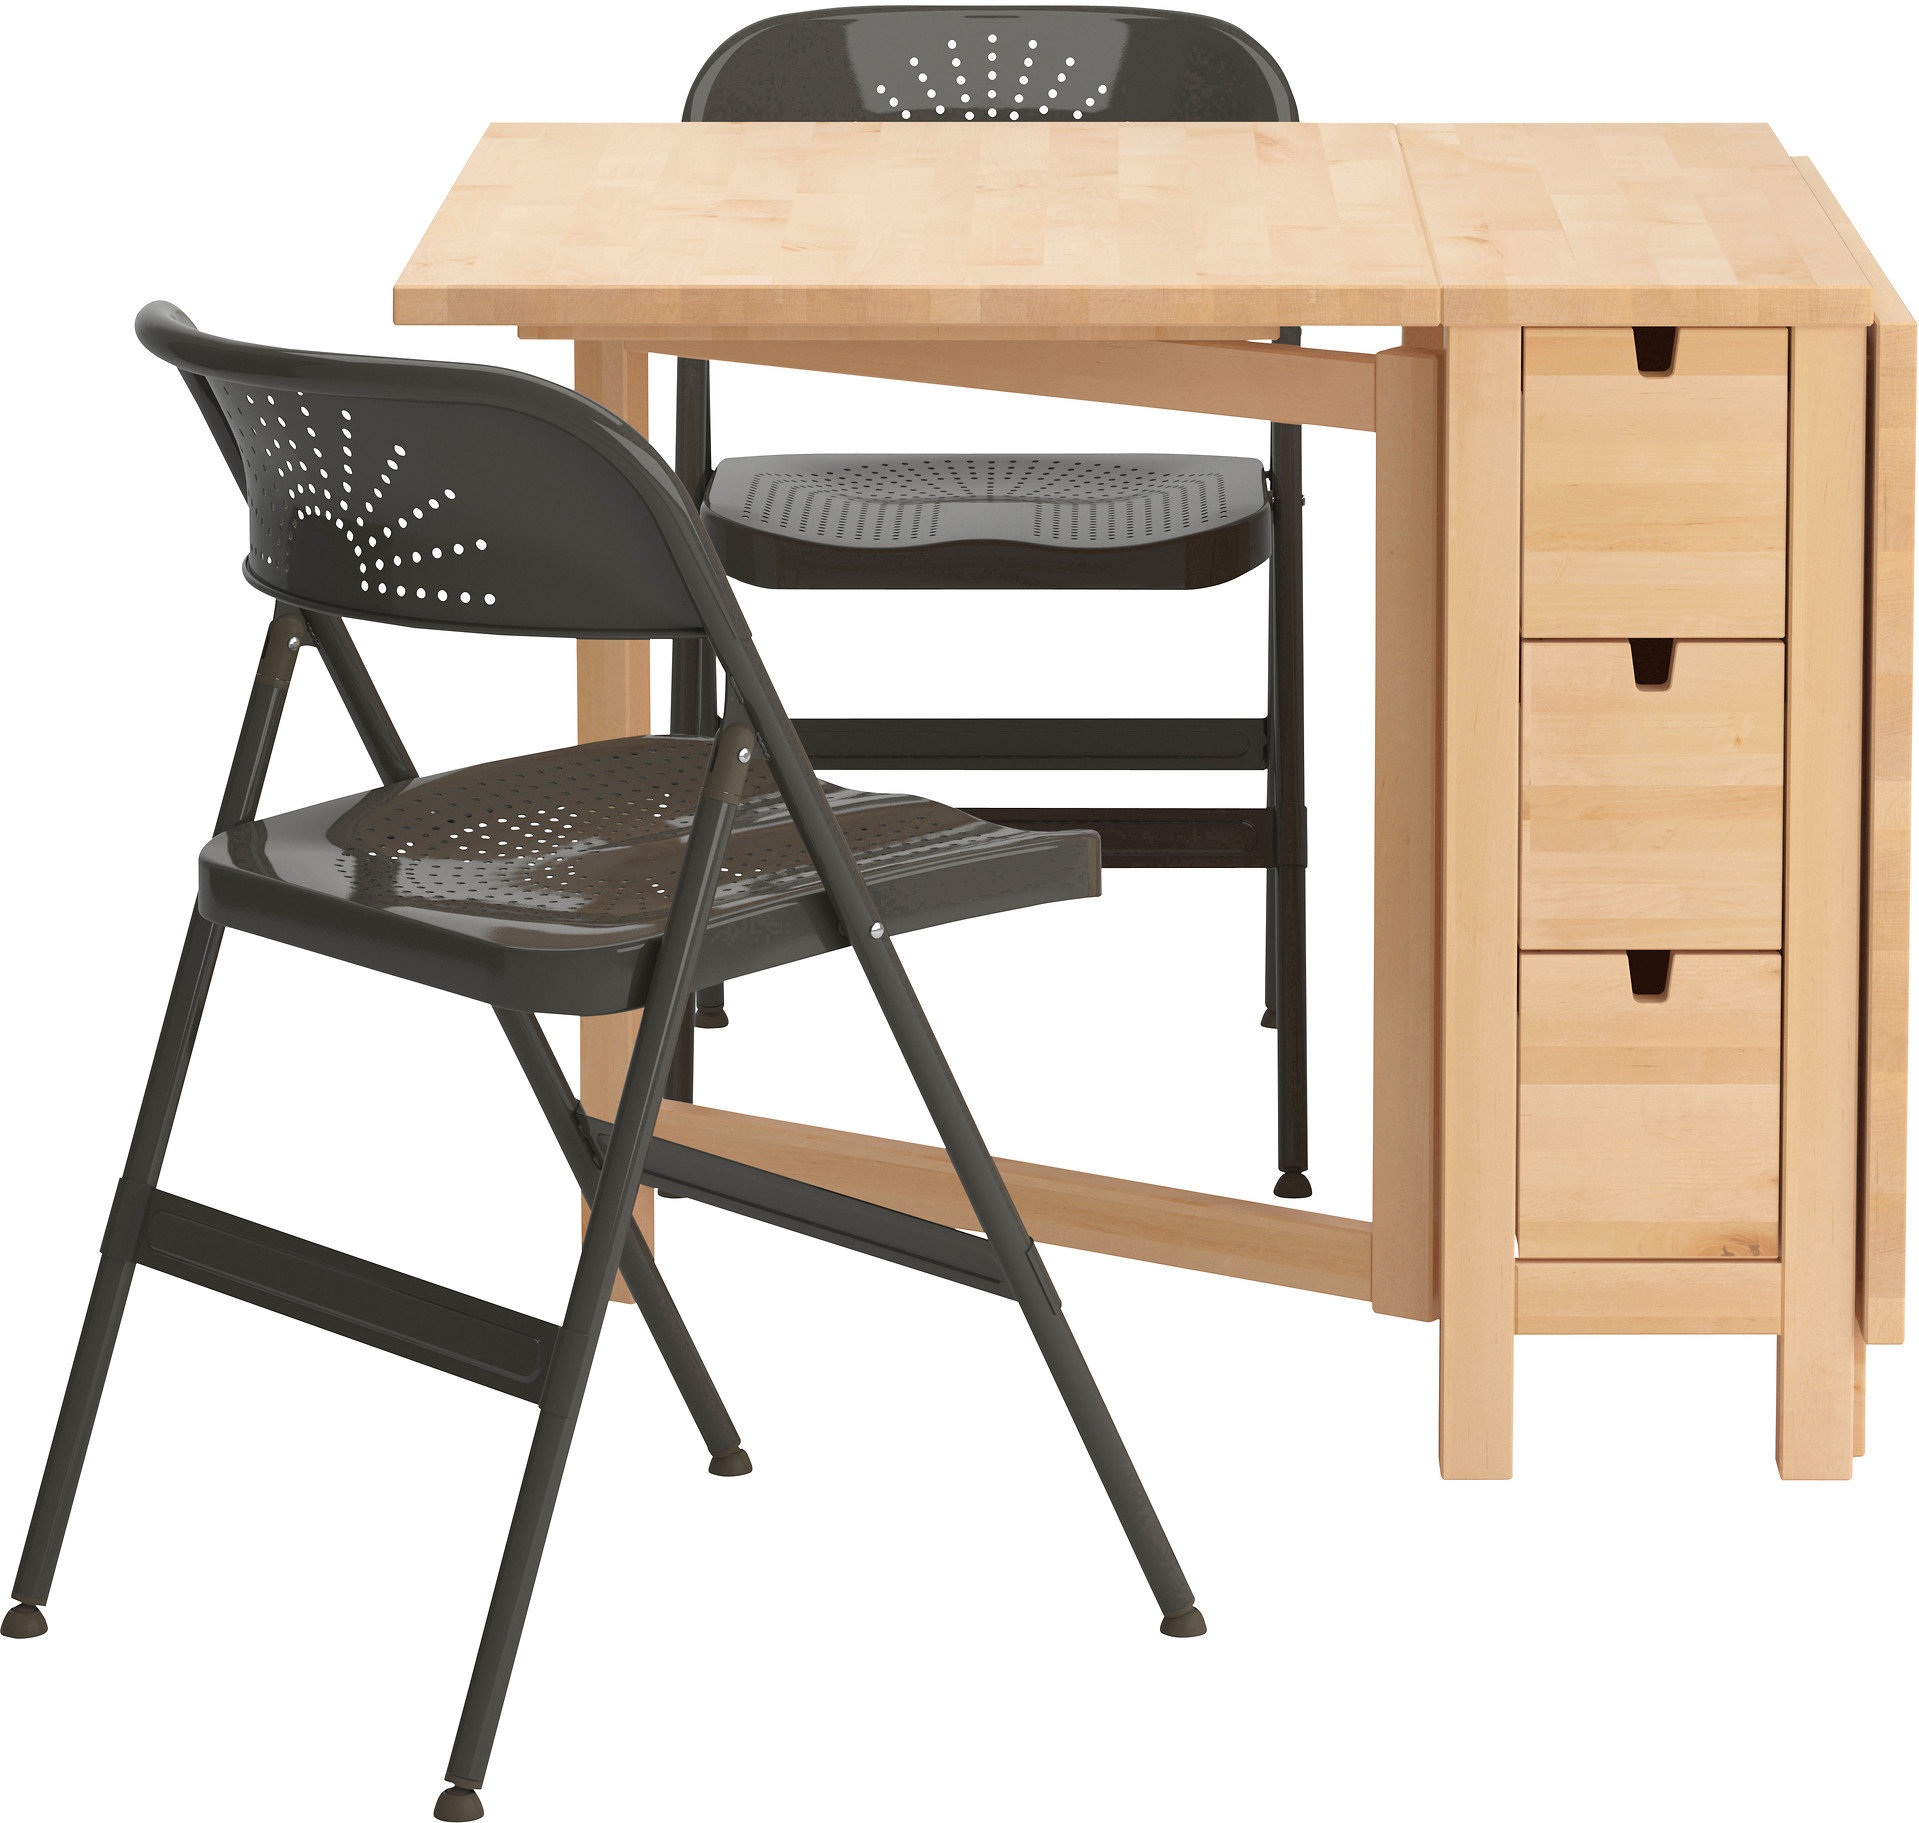 #Ikea                     #table                    #NORDEN/FRODE #Table #chairs #IKEA                  NORDEN/FRODE Table and 2 chairs - IKEA                                        http://www.seapai.com/product.aspx?PID=1875081